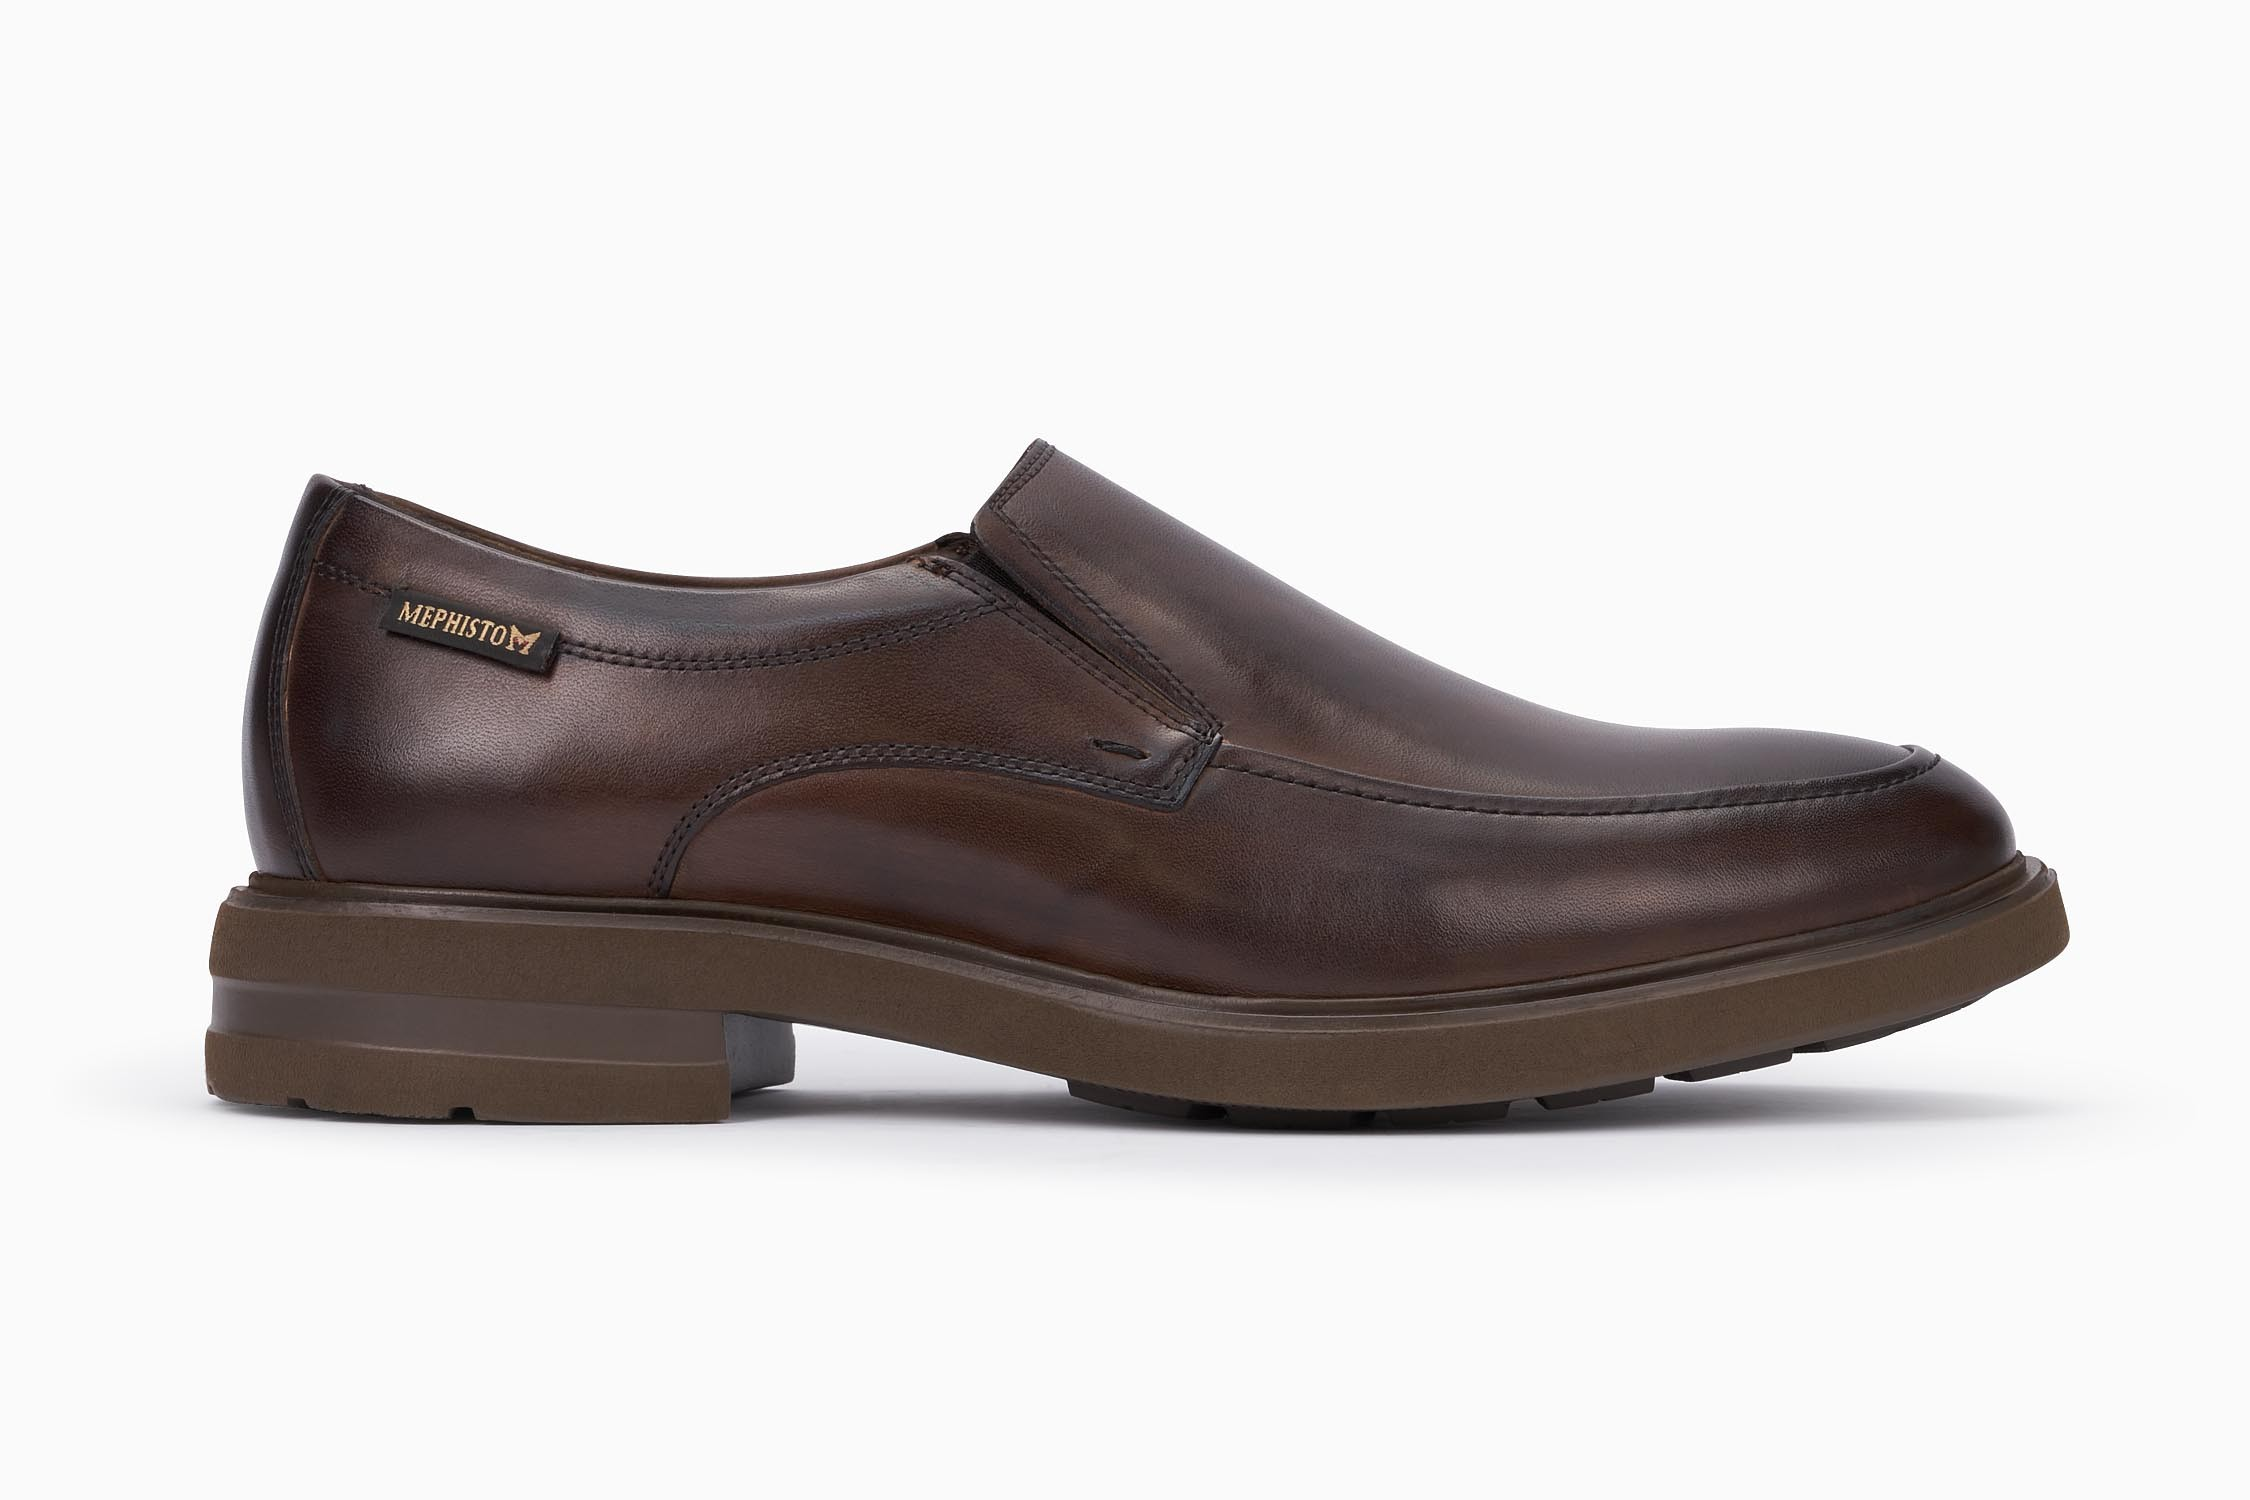 a10b0d9a58 ORSO Slip-on - MEPHISTO Men's Loafers and Slip-ons | Leather, Dark Brown